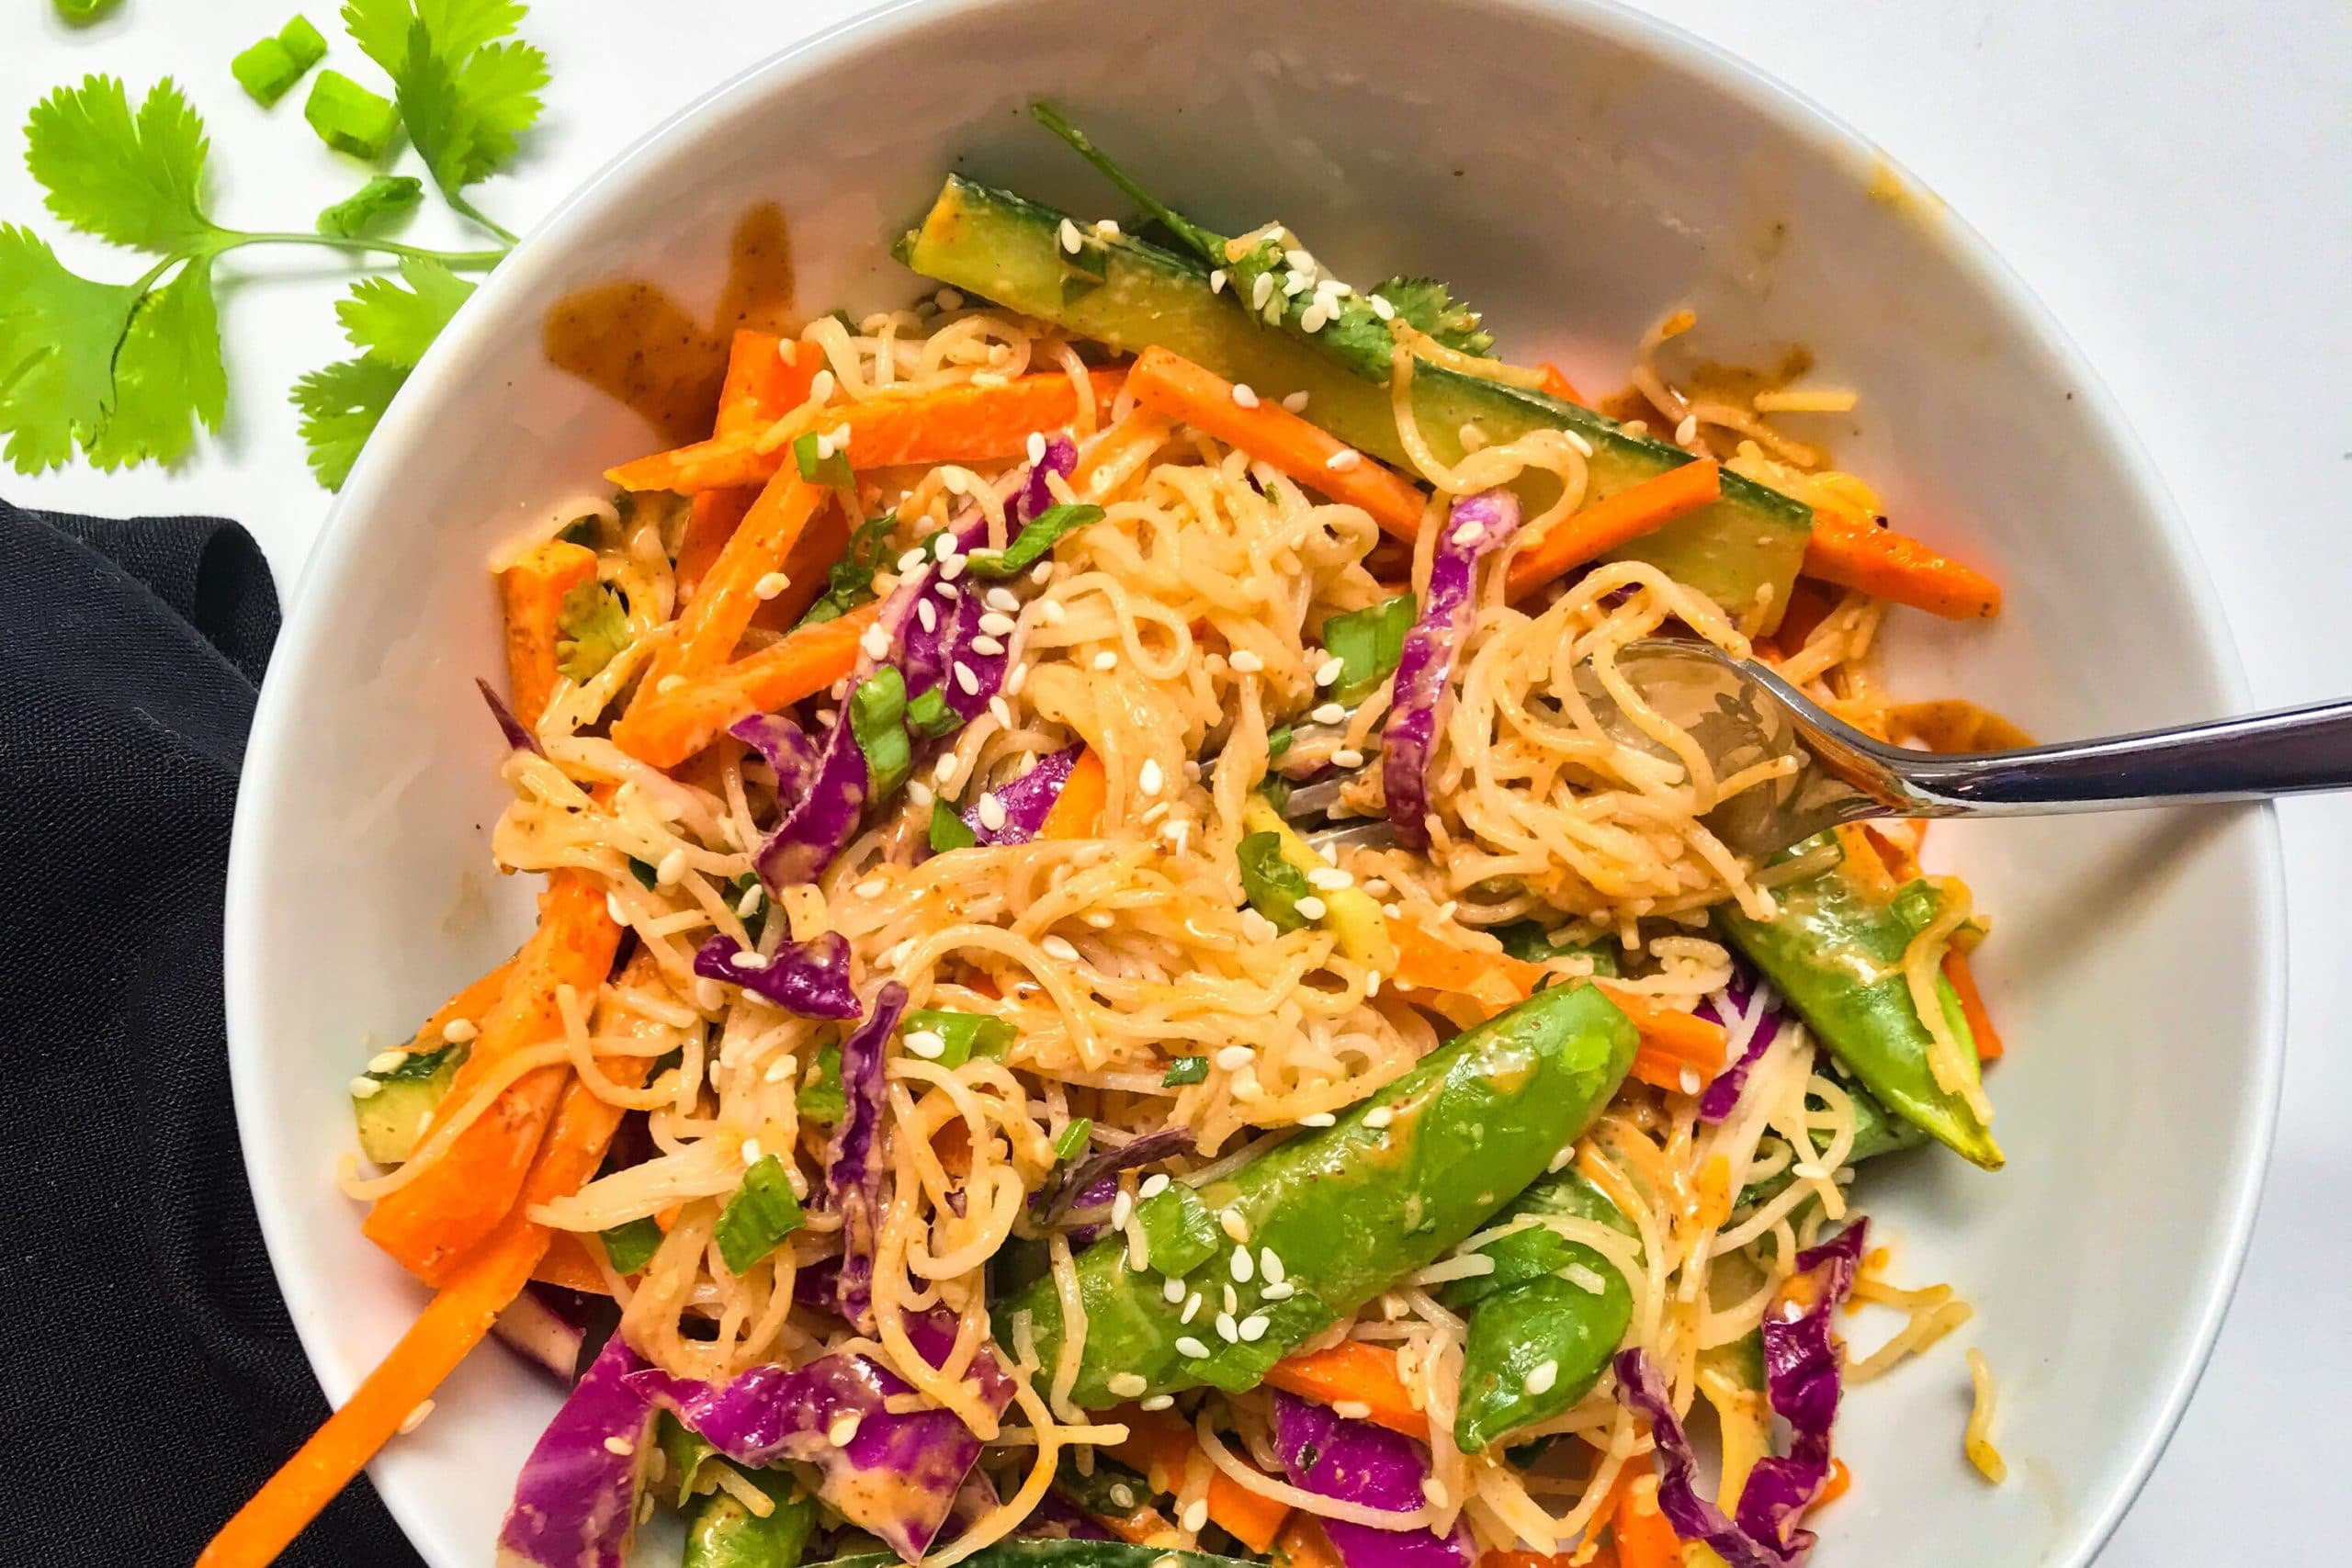 Asian Noodle Salad with an Almond Dressing